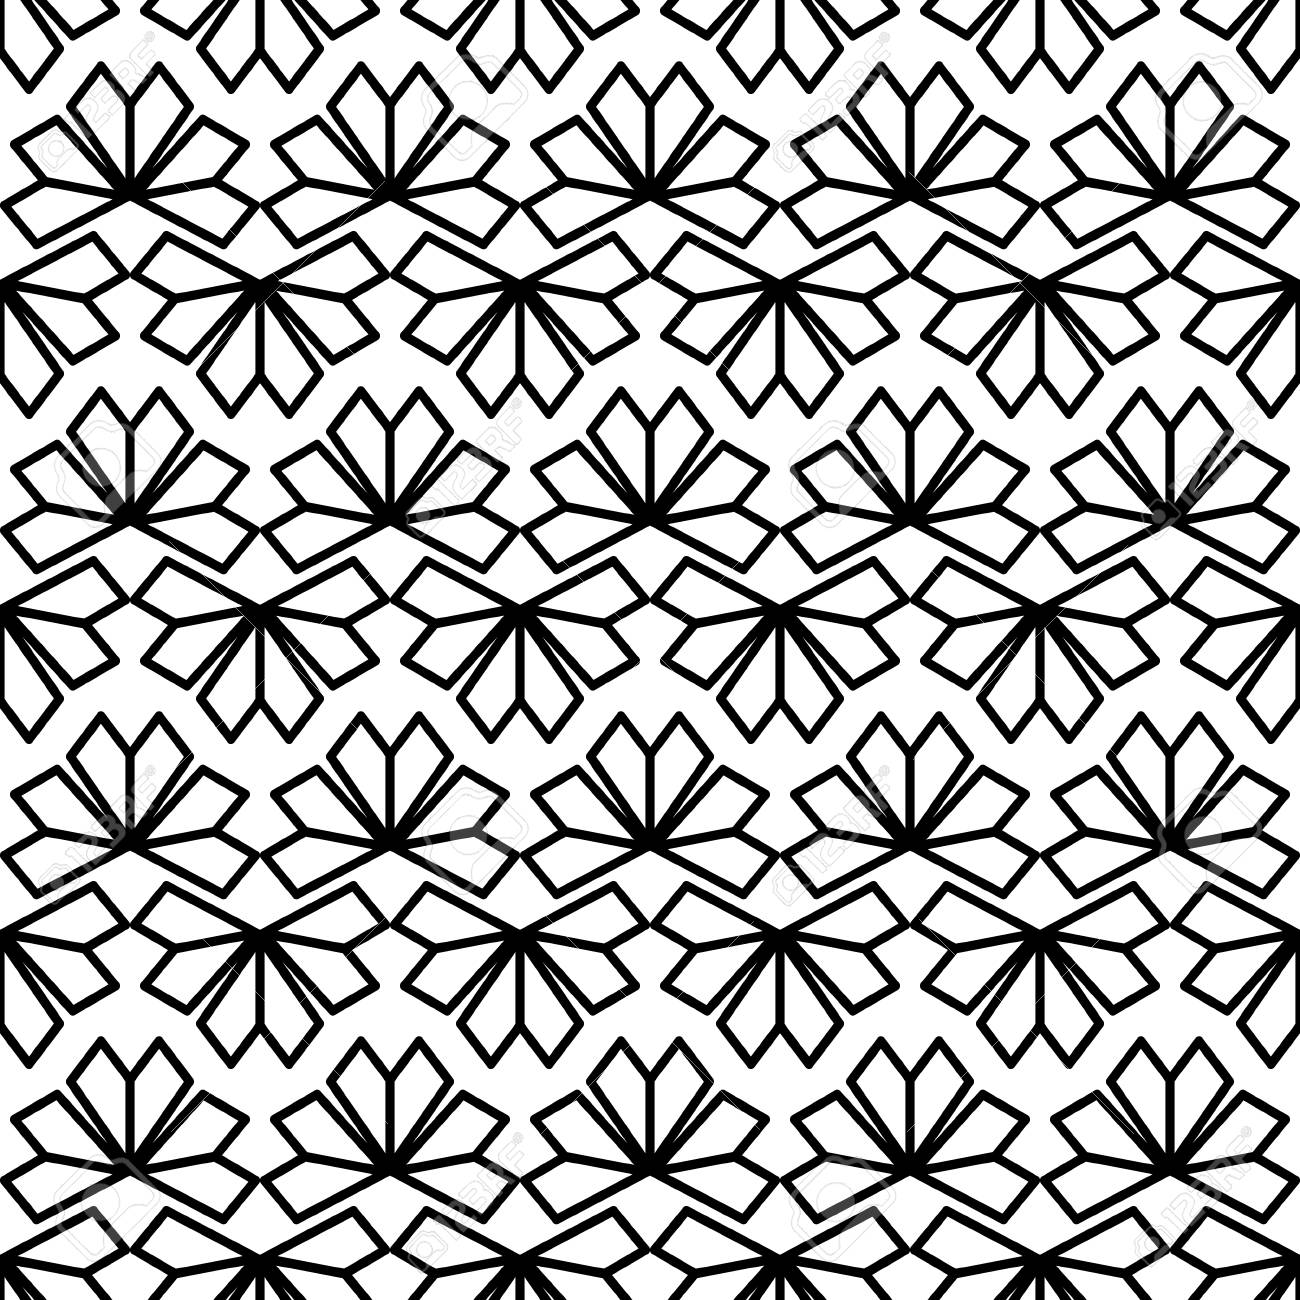 Black white texture vector modern chinese geometric flower pattern oriental fan motif abstract